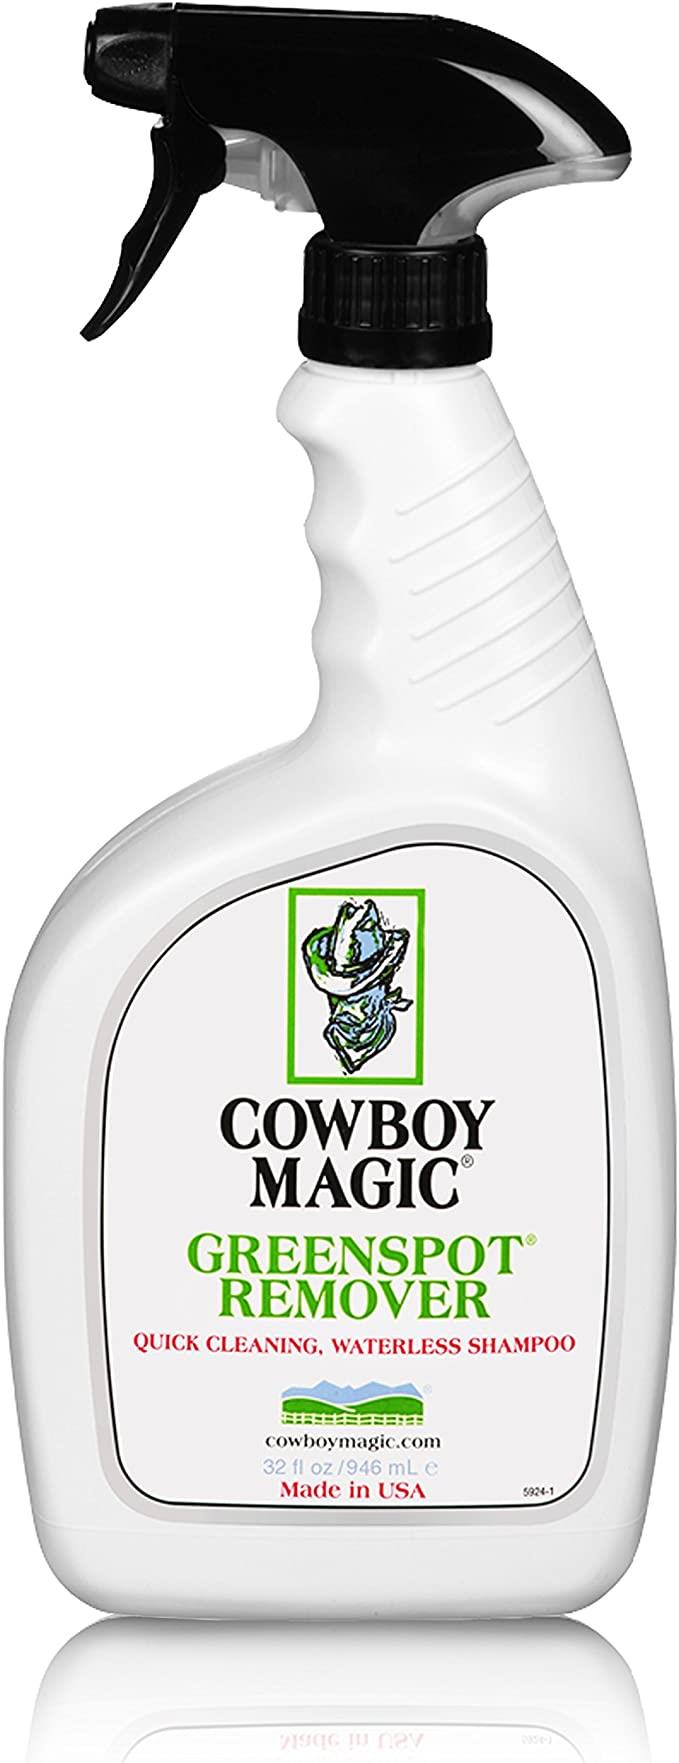 Cowboy Magic Greenspot Remover - 32 oz